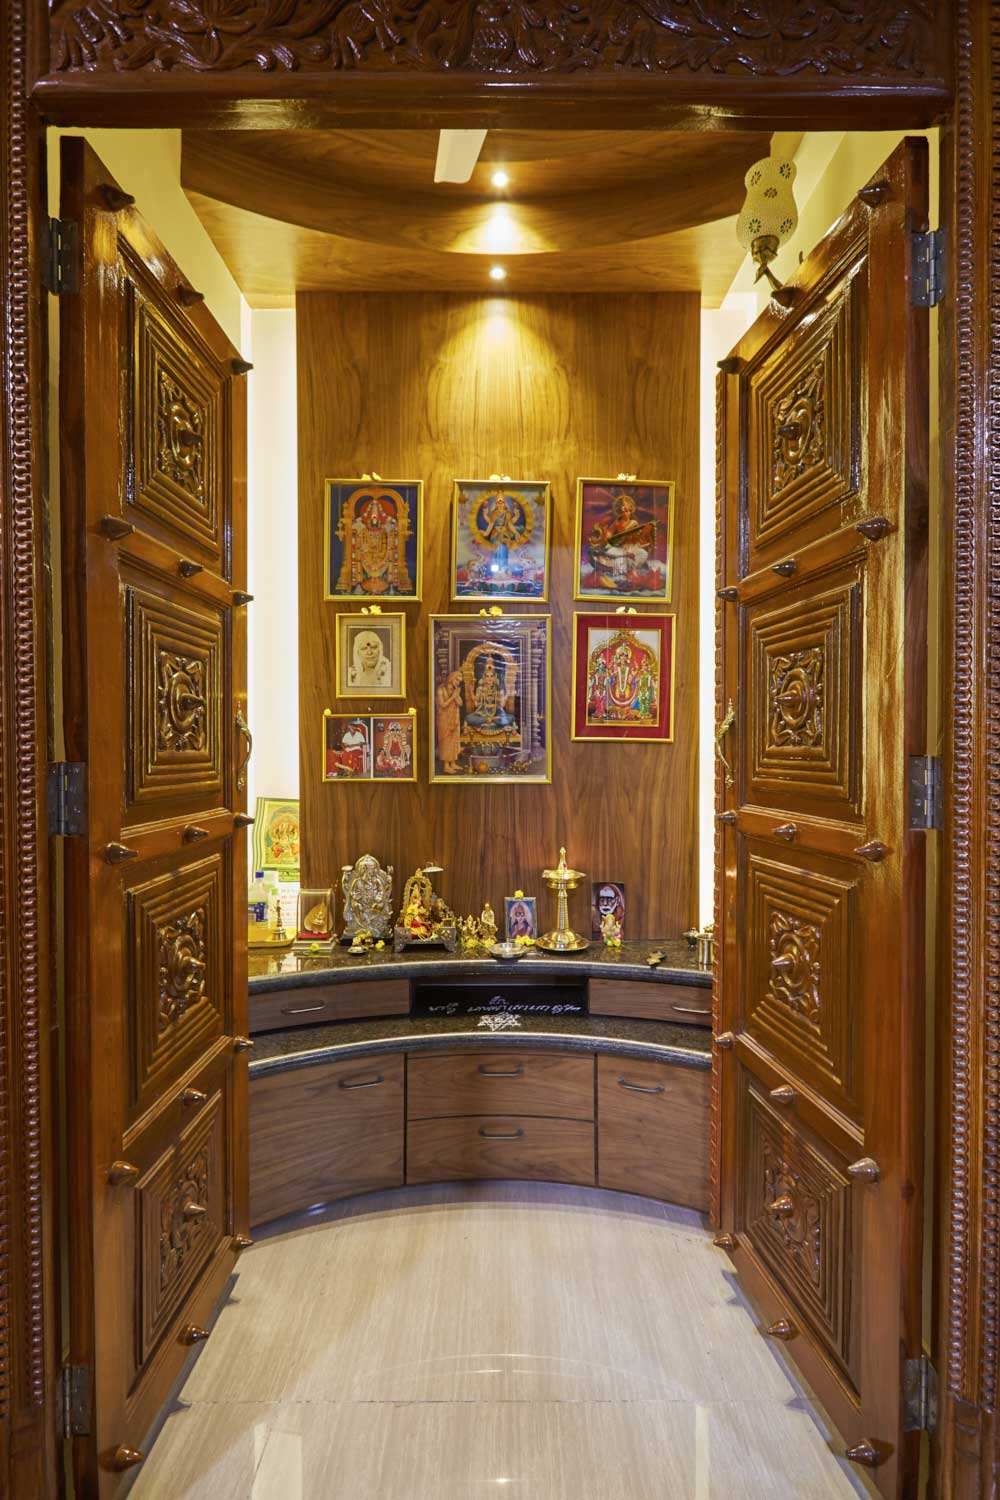 40 Door Design For Mandir Important Ideas: 10+ Pooja Room Door Designs That Beautify Your Mandir Entrance